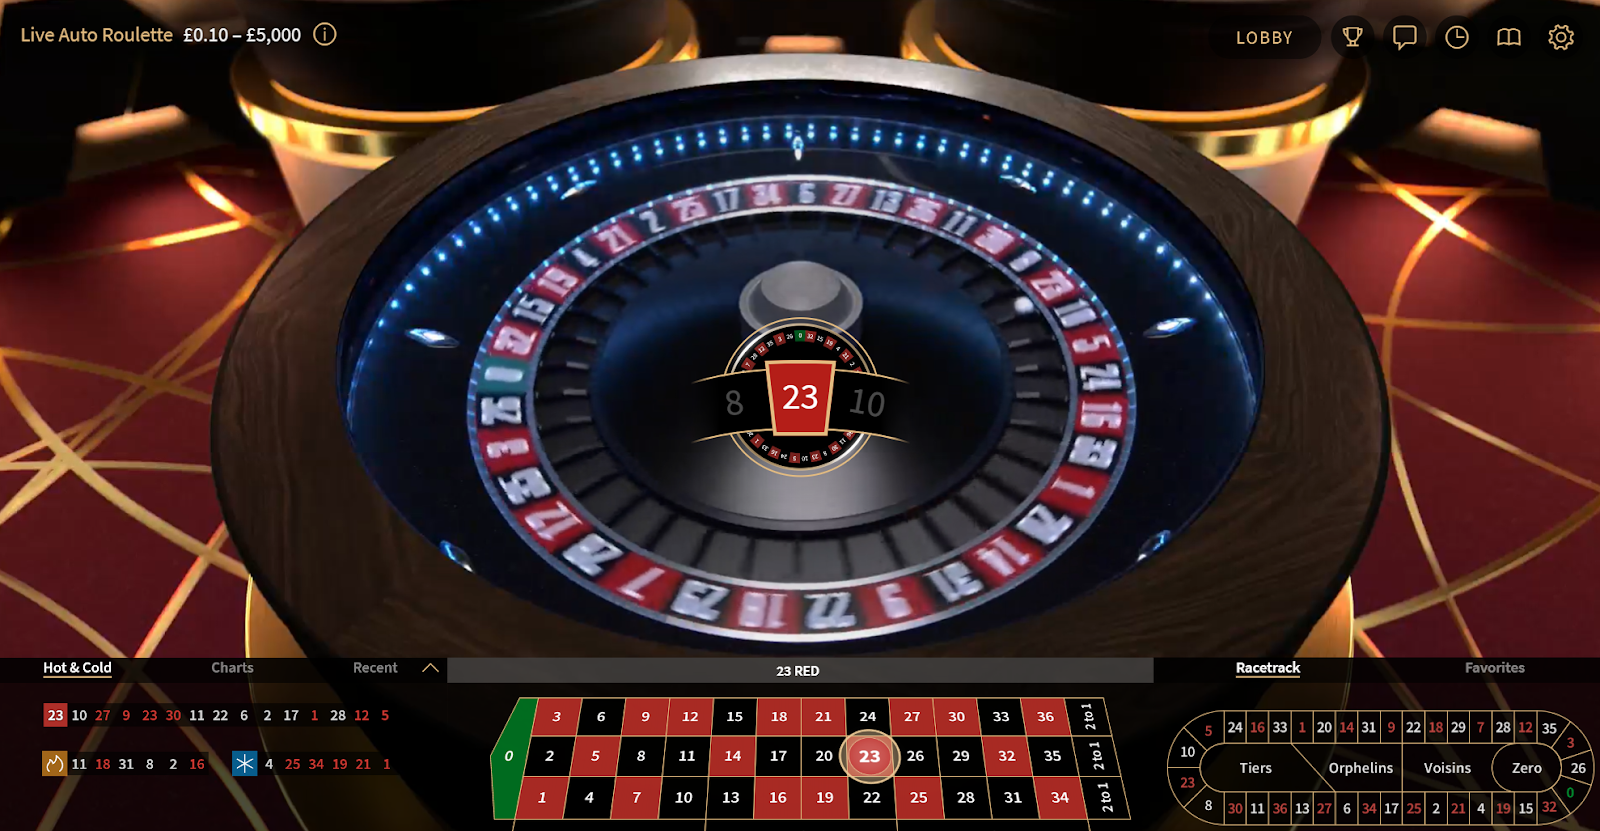 Auto Roulette is one of the many great roulette games you can play at Casino Gods